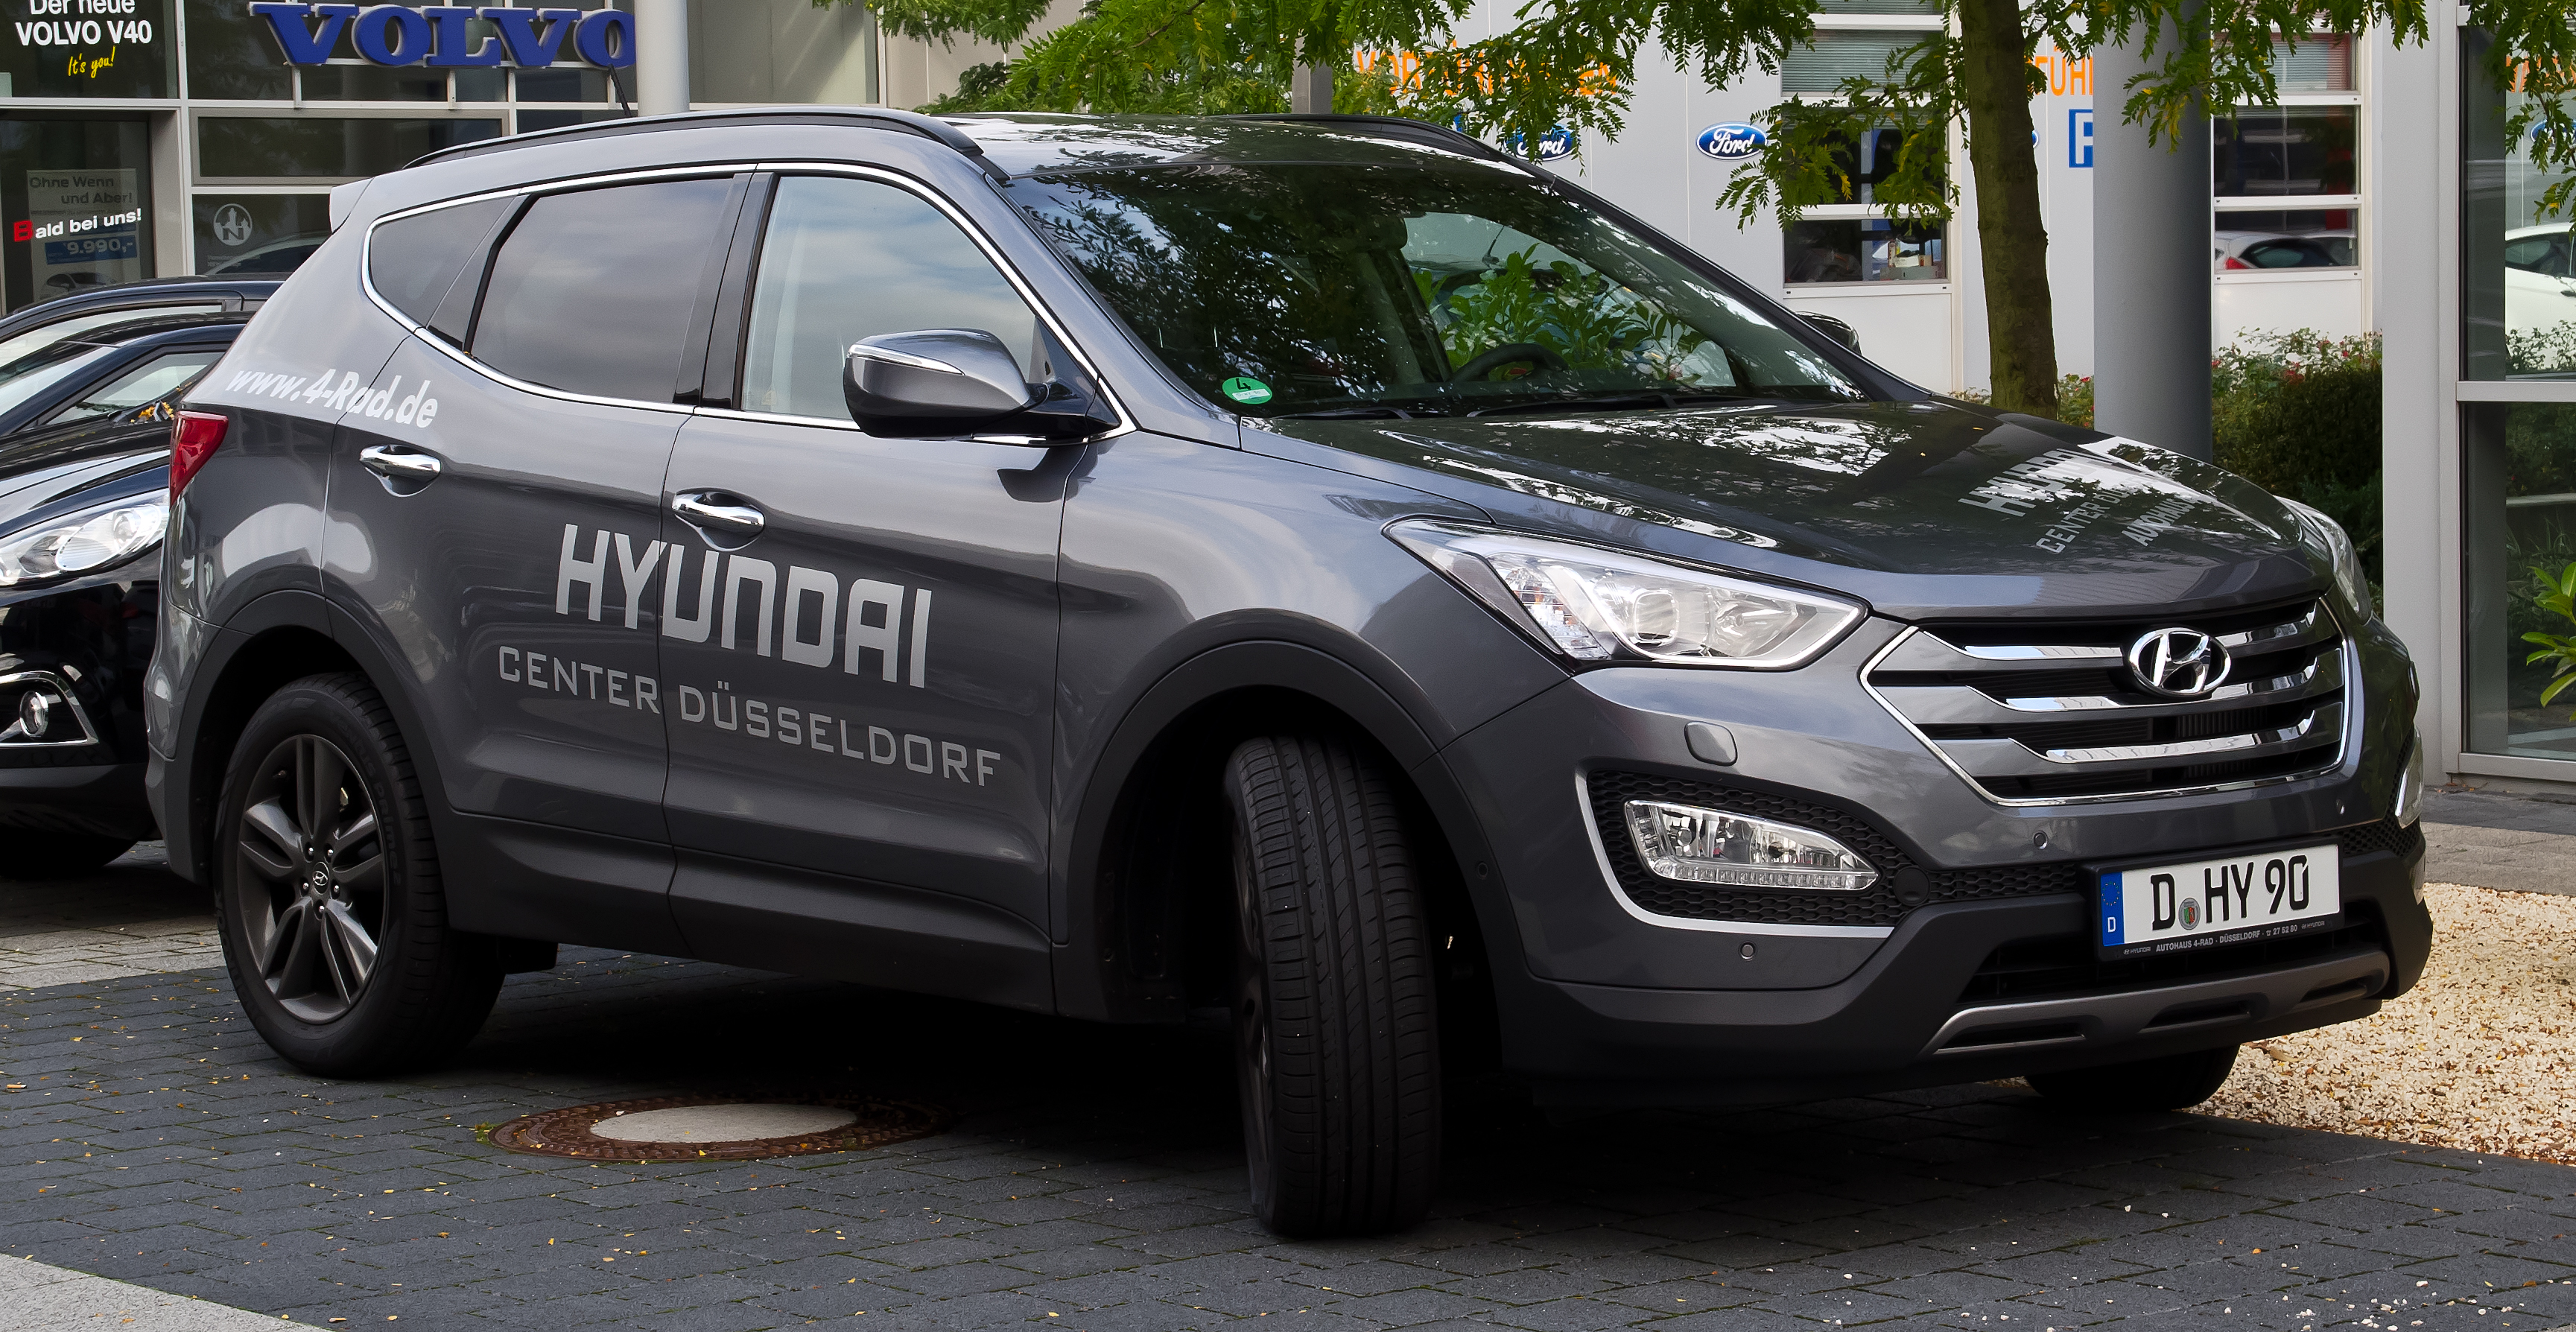 Hyundai Santa Fe 2.2 2012 photo - 3